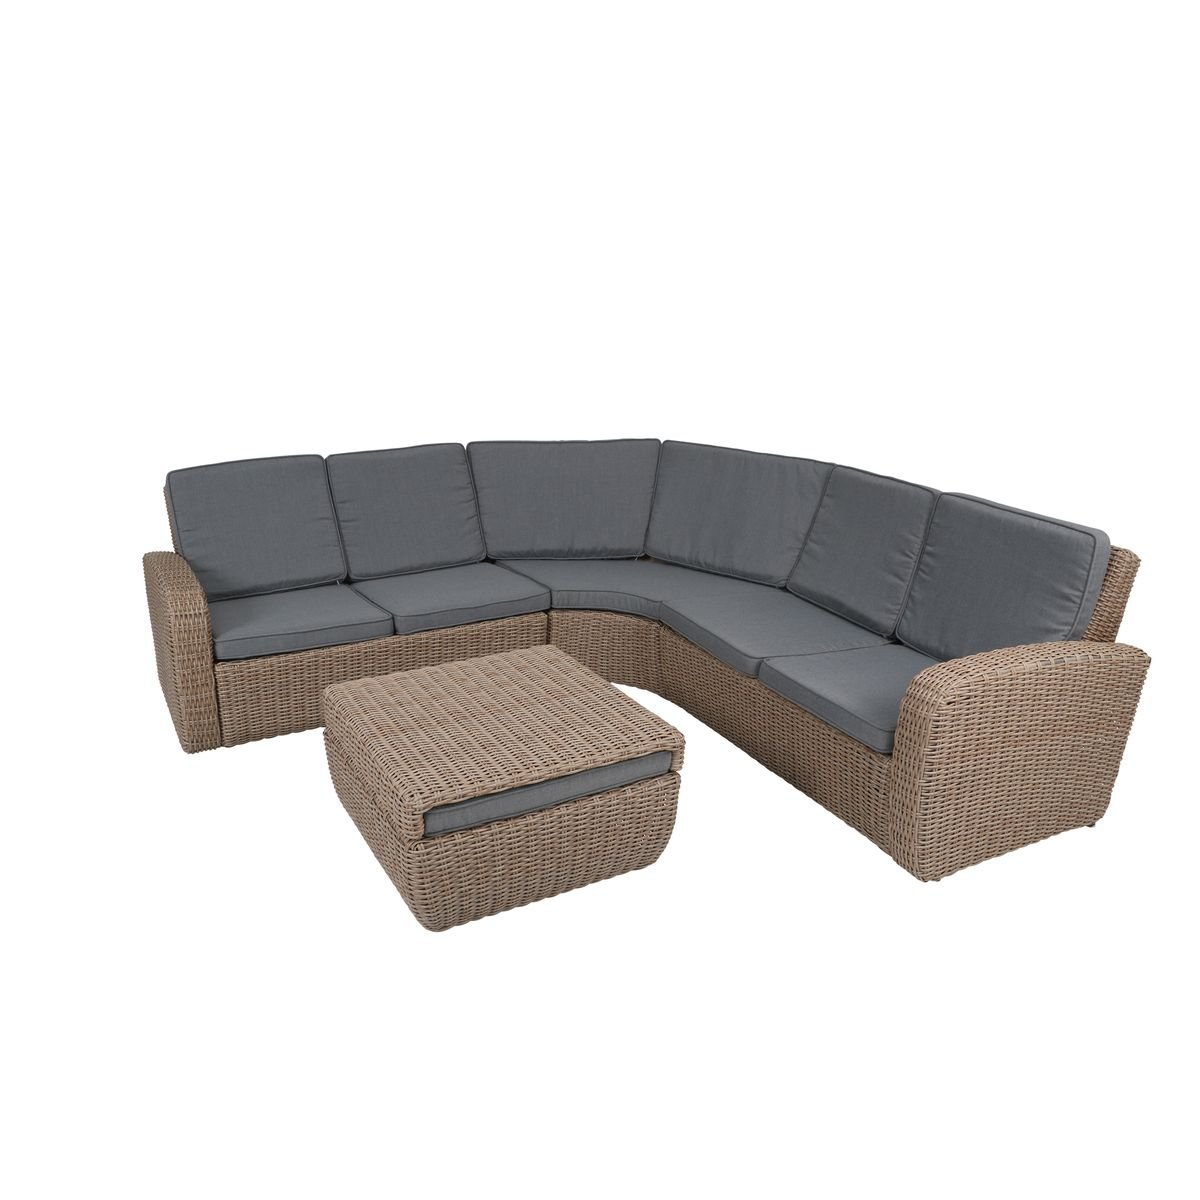 greemotion rattan lounge new york gartenm bel set 4 teilig aus polyrattan in braun mit. Black Bedroom Furniture Sets. Home Design Ideas